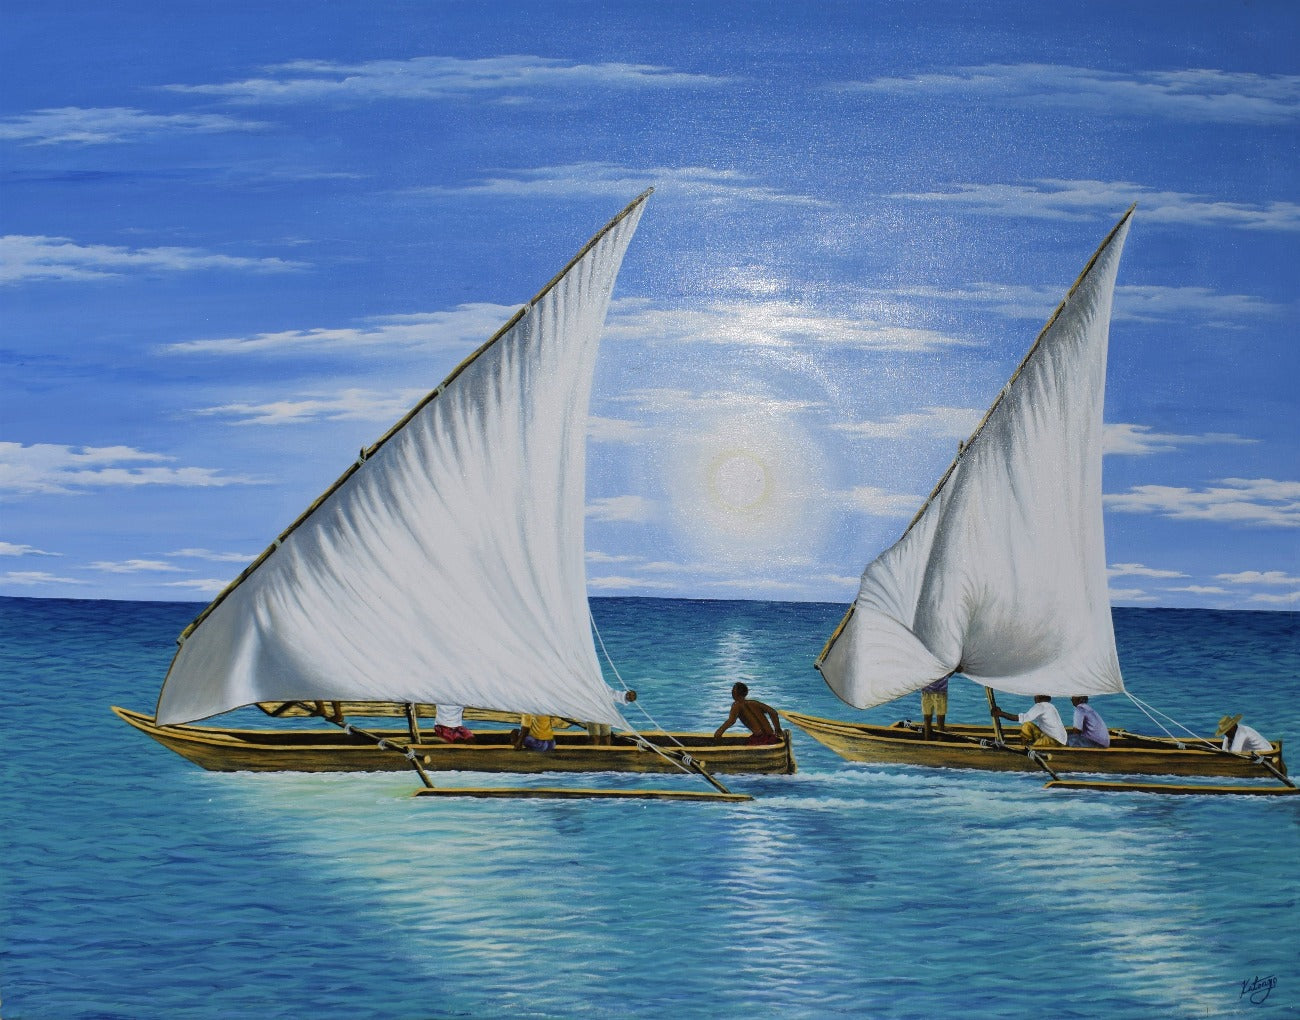 AFRICAN ART OF A BOAT FOR SALE